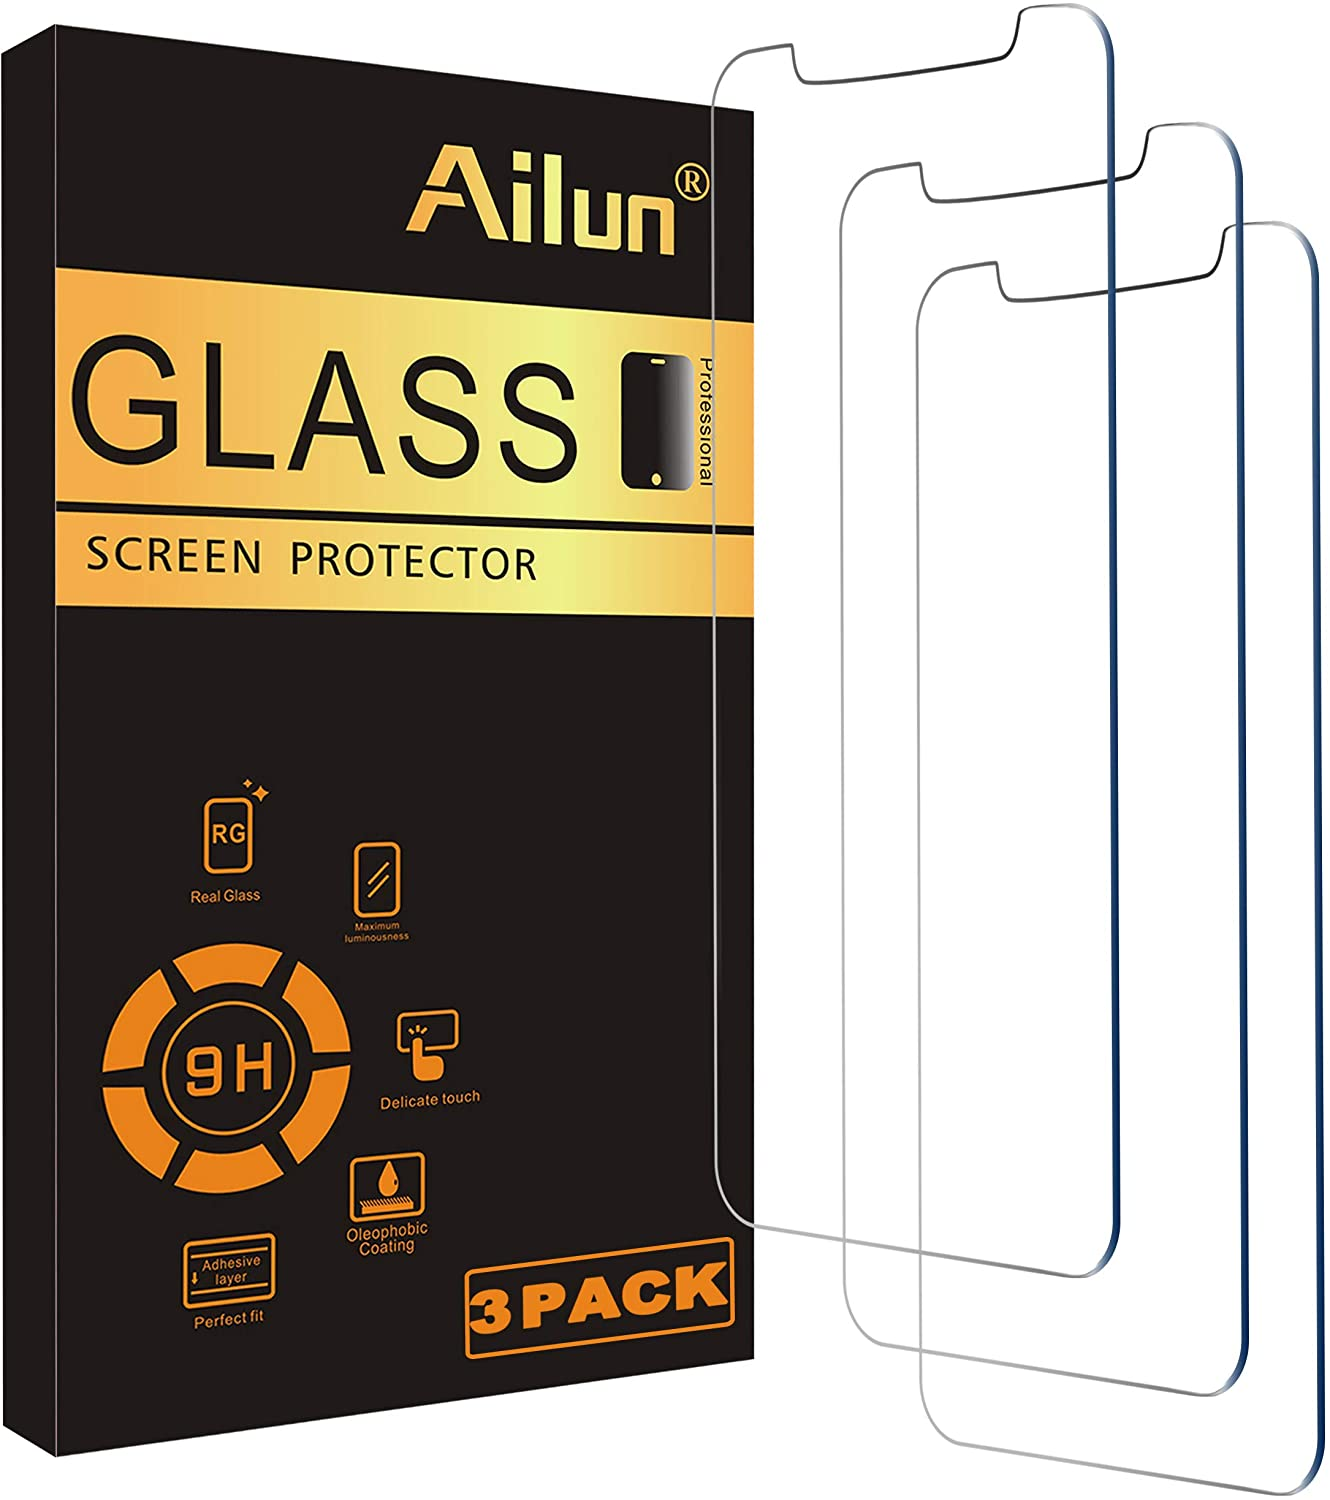 Save 37% on Ailun Glass Screen Protector Compatible for iPhone 12 pro